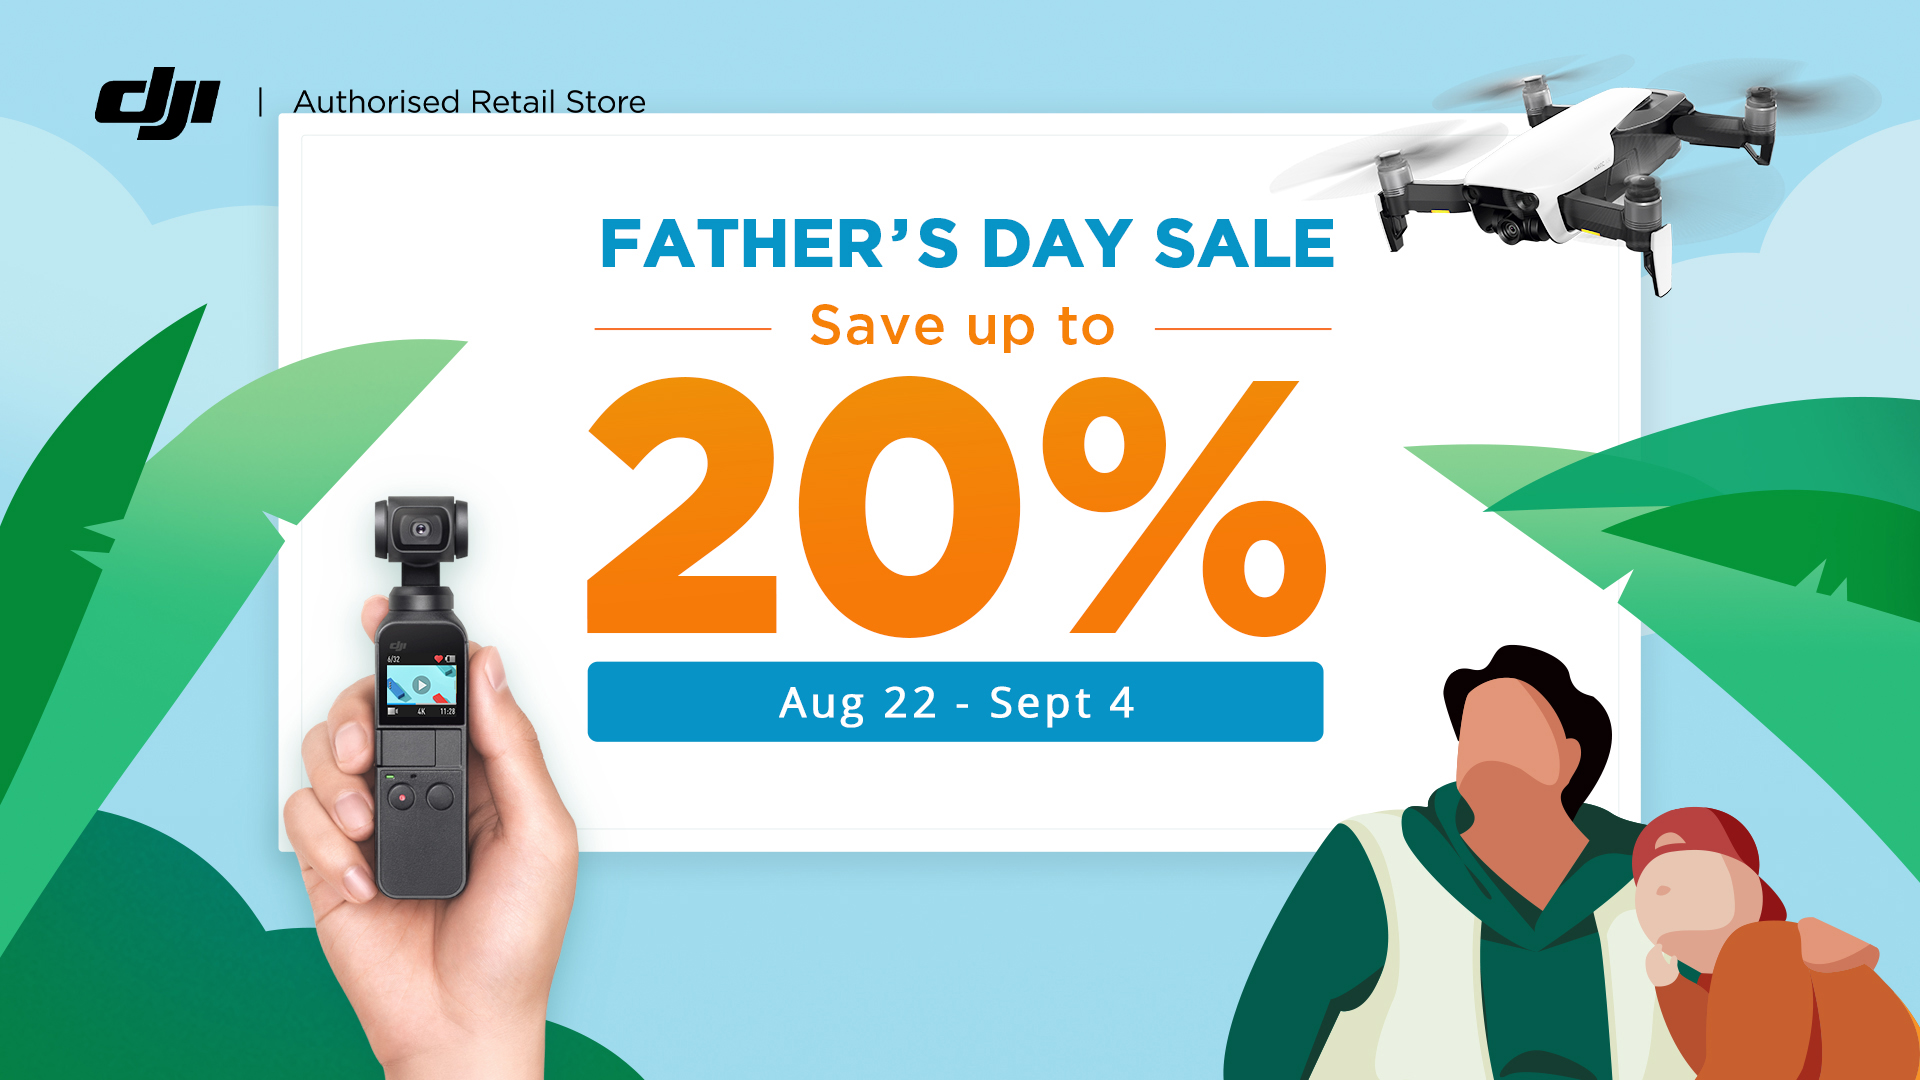 Father's Day Sale 2019 - Save up to 20%!